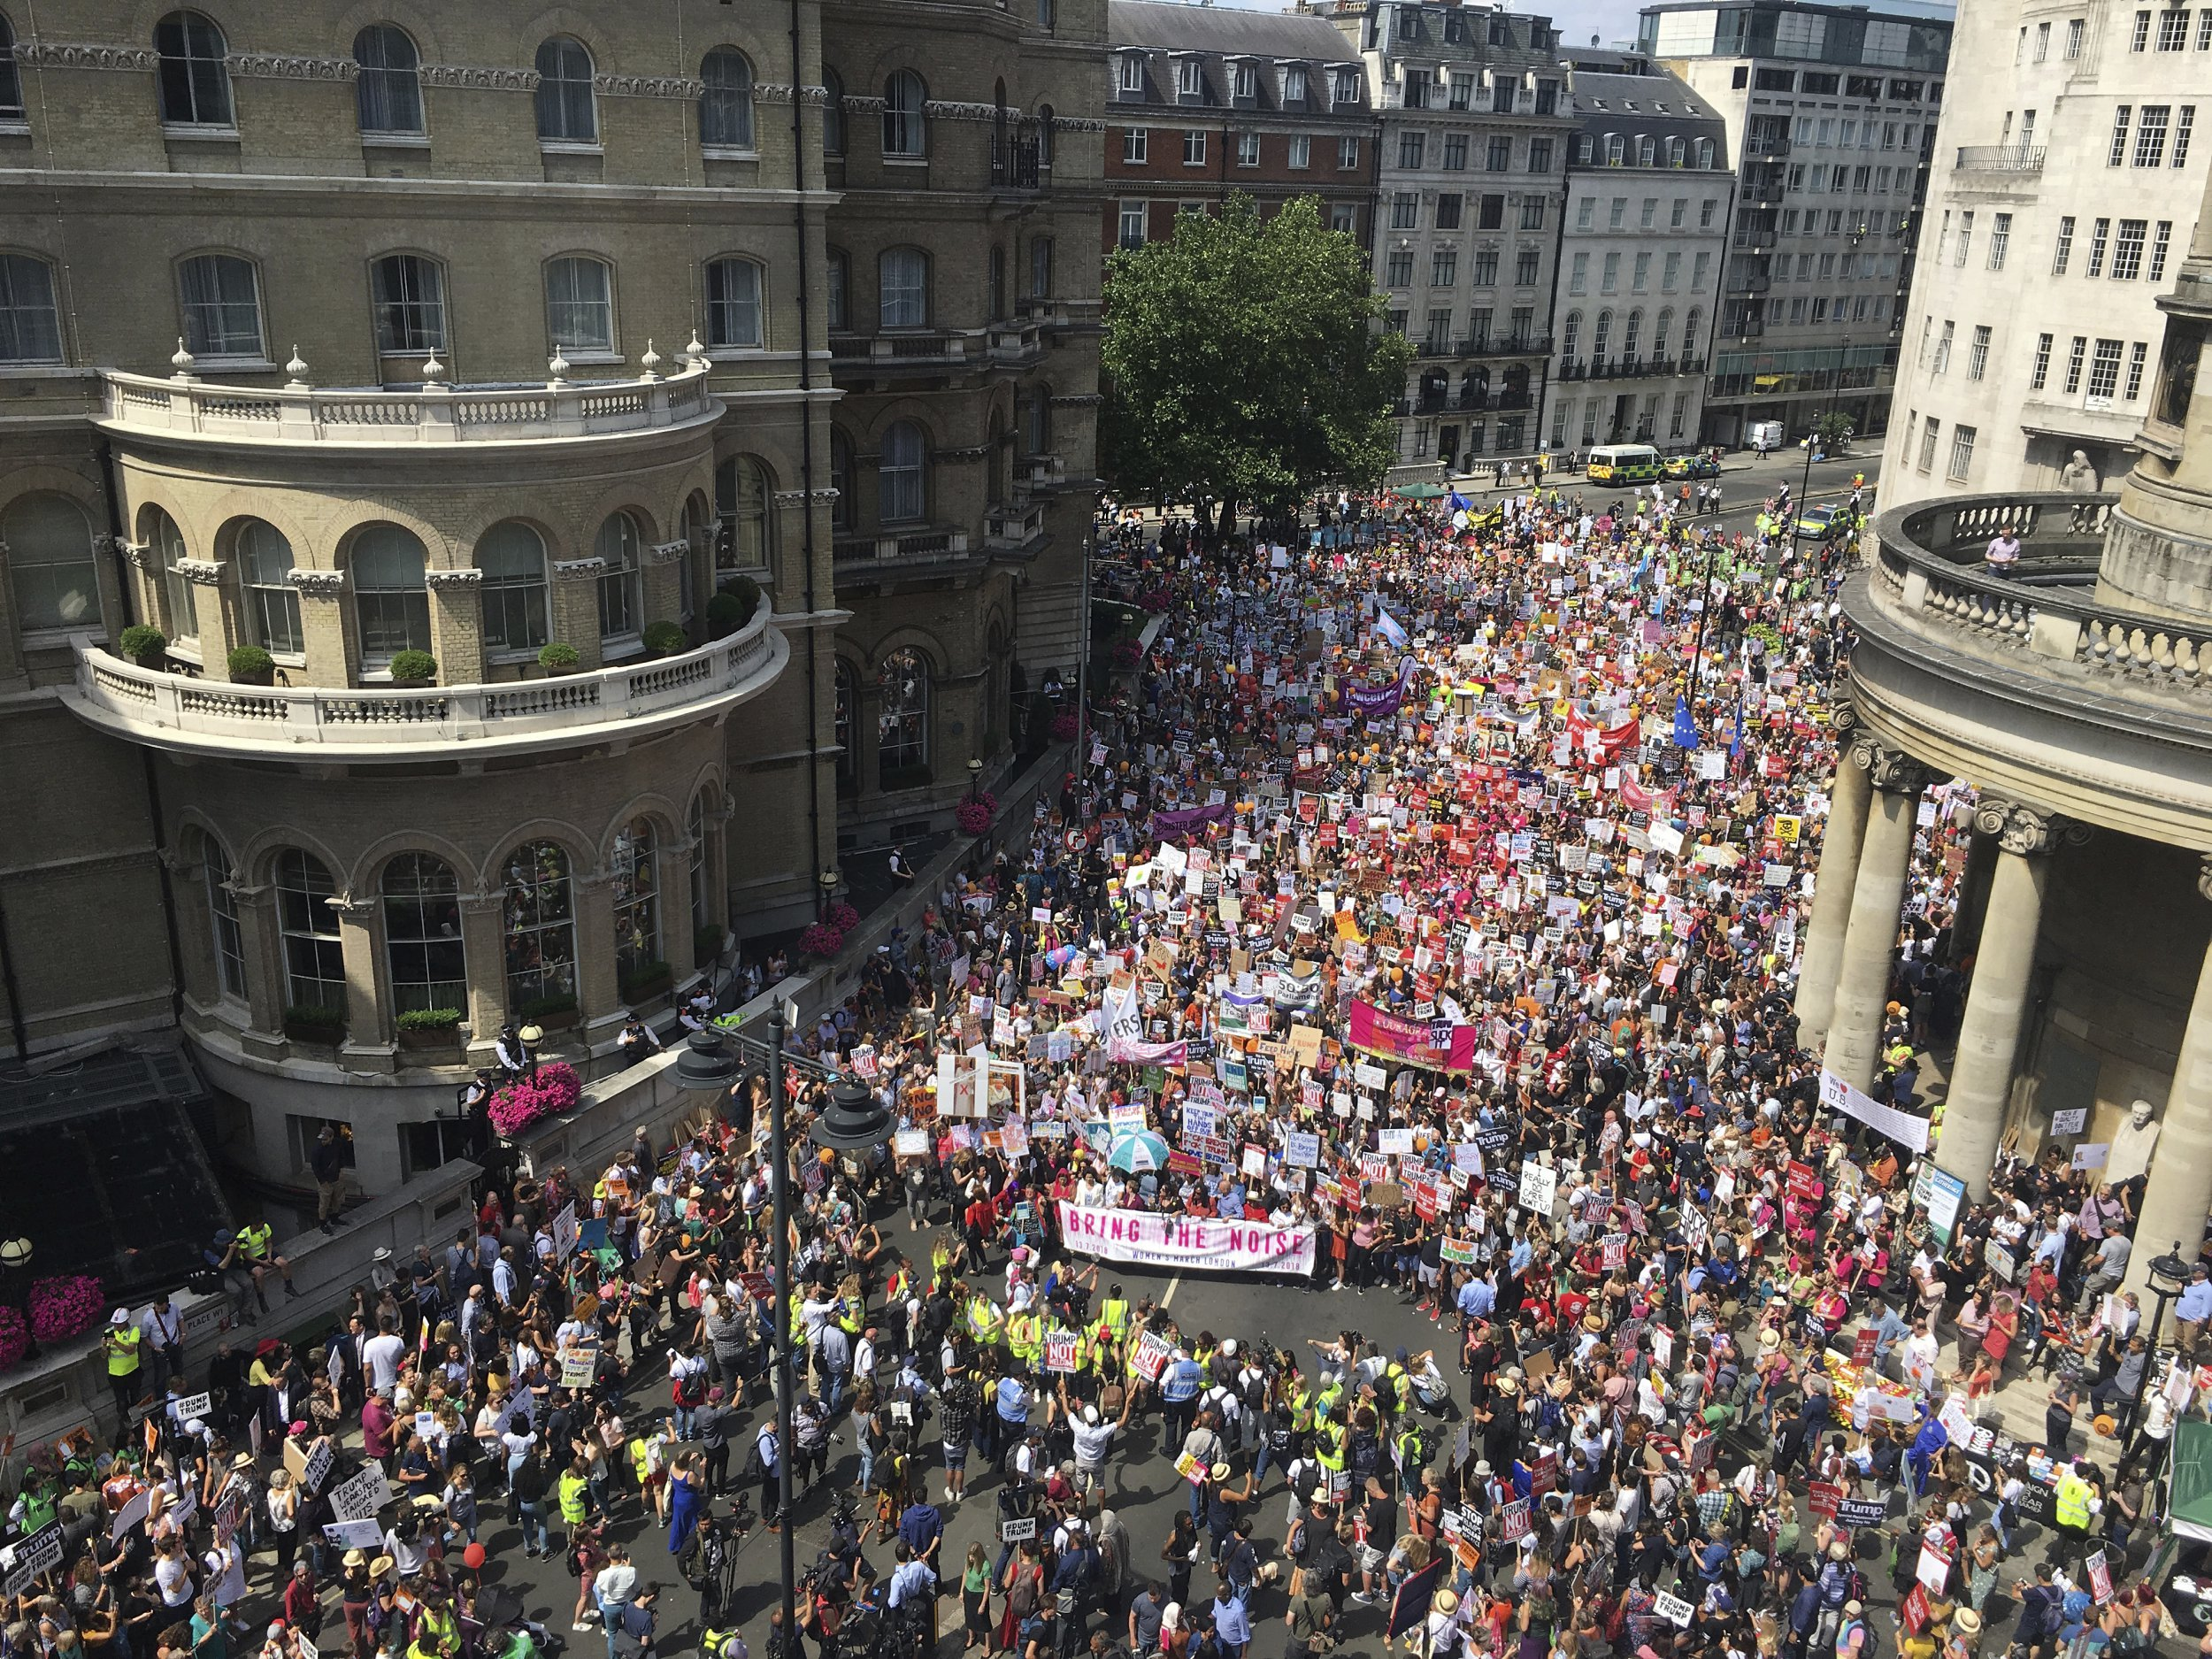 """Protesters for the 'Stop Trump' Women's March gather in London, Friday, July 13, 2018. Trump's pomp-filled welcome to Britain was overshadowed Friday by an explosive interview in which he blasted Prime Minister Theresa May, blamed London's mayor for terror attacks against the city and argued that Europe was """"losing its culture"""" because of immigration.U.S. President Donald Trump in London, England, Friday, July 13, 2018. (AP Photo/Jeff Schaeffer)"""